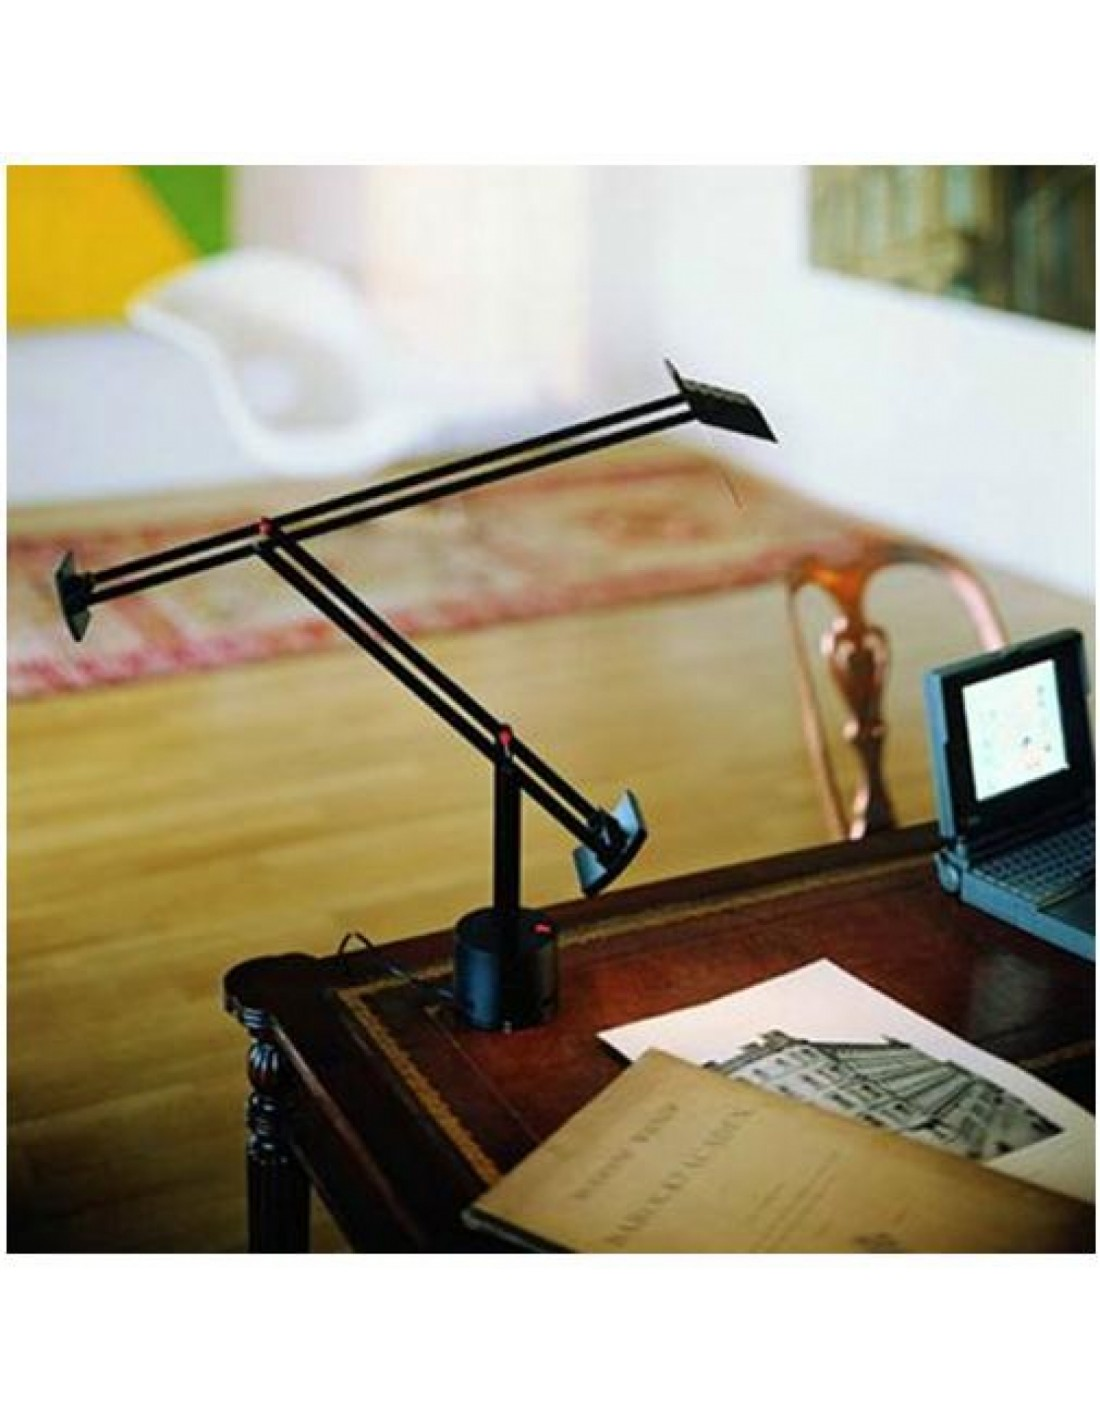 lampe de table artemide tizio noir micro noir mise en situation. Black Bedroom Furniture Sets. Home Design Ideas